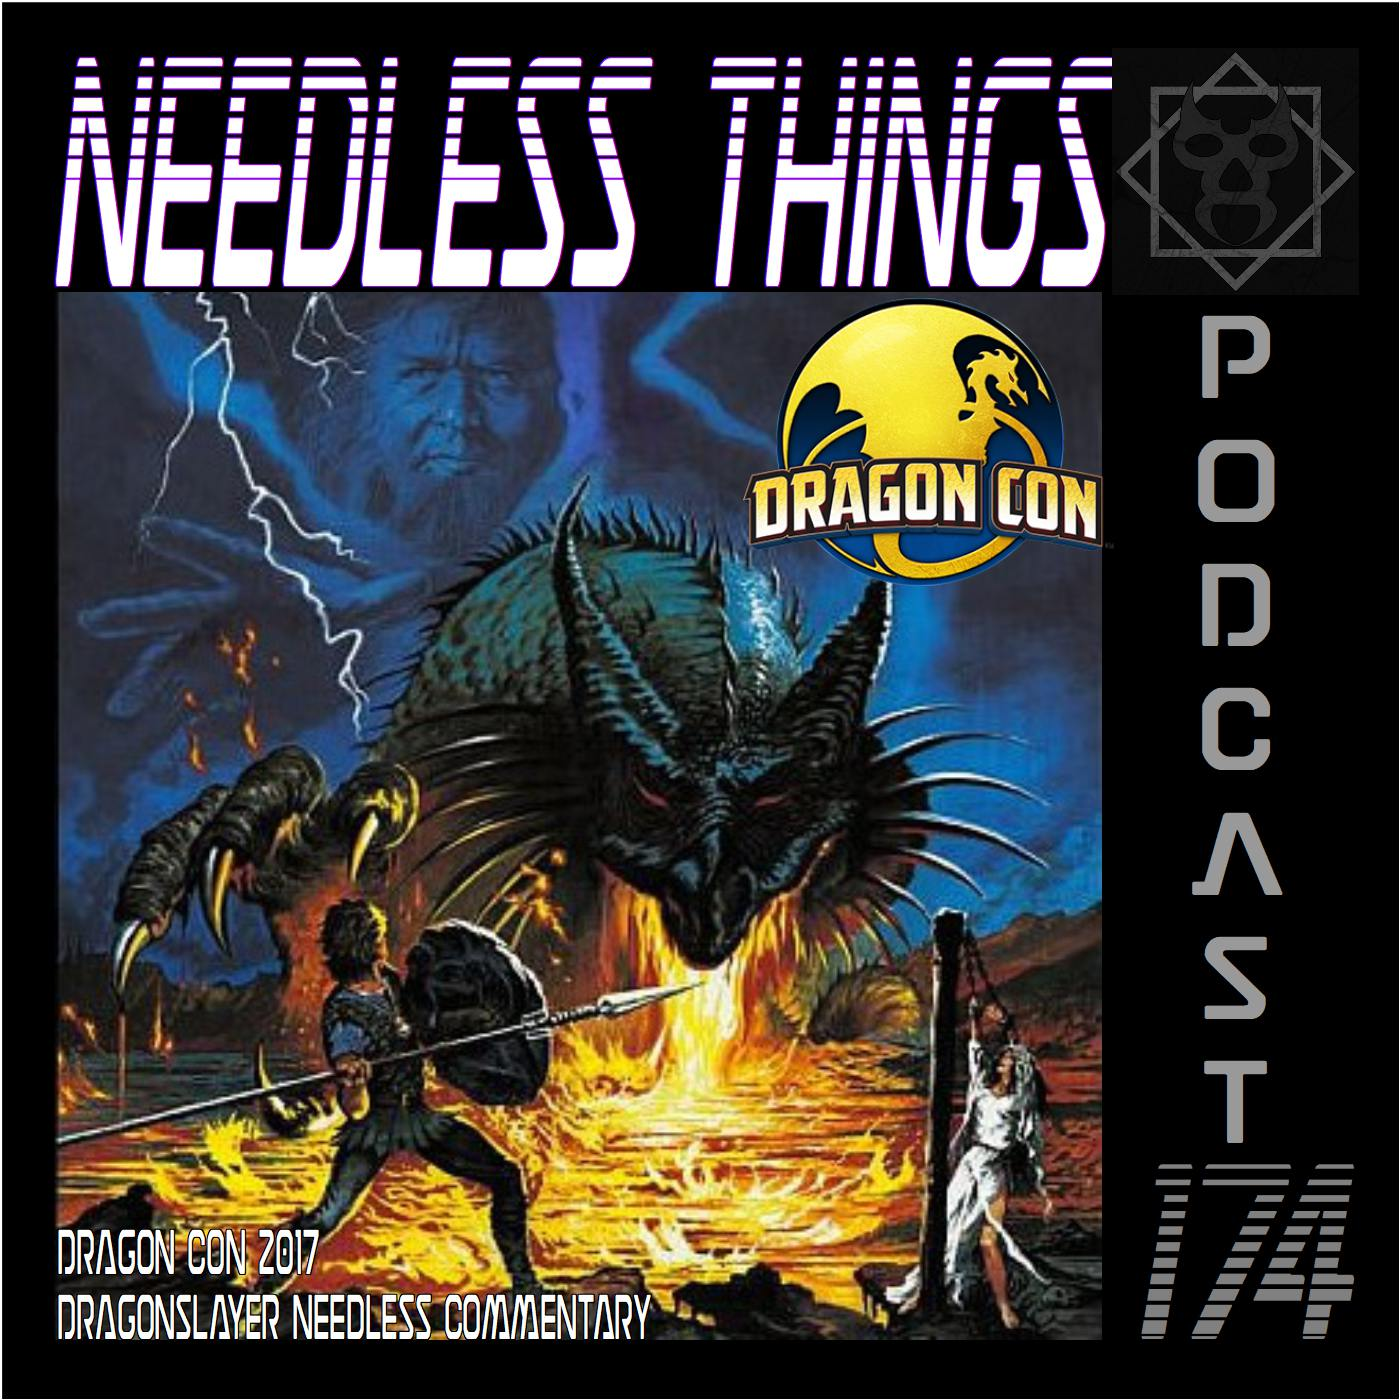 Needless Things Podcast 174 – Dragon Con 2017: Dragonslayer Needless Commentary